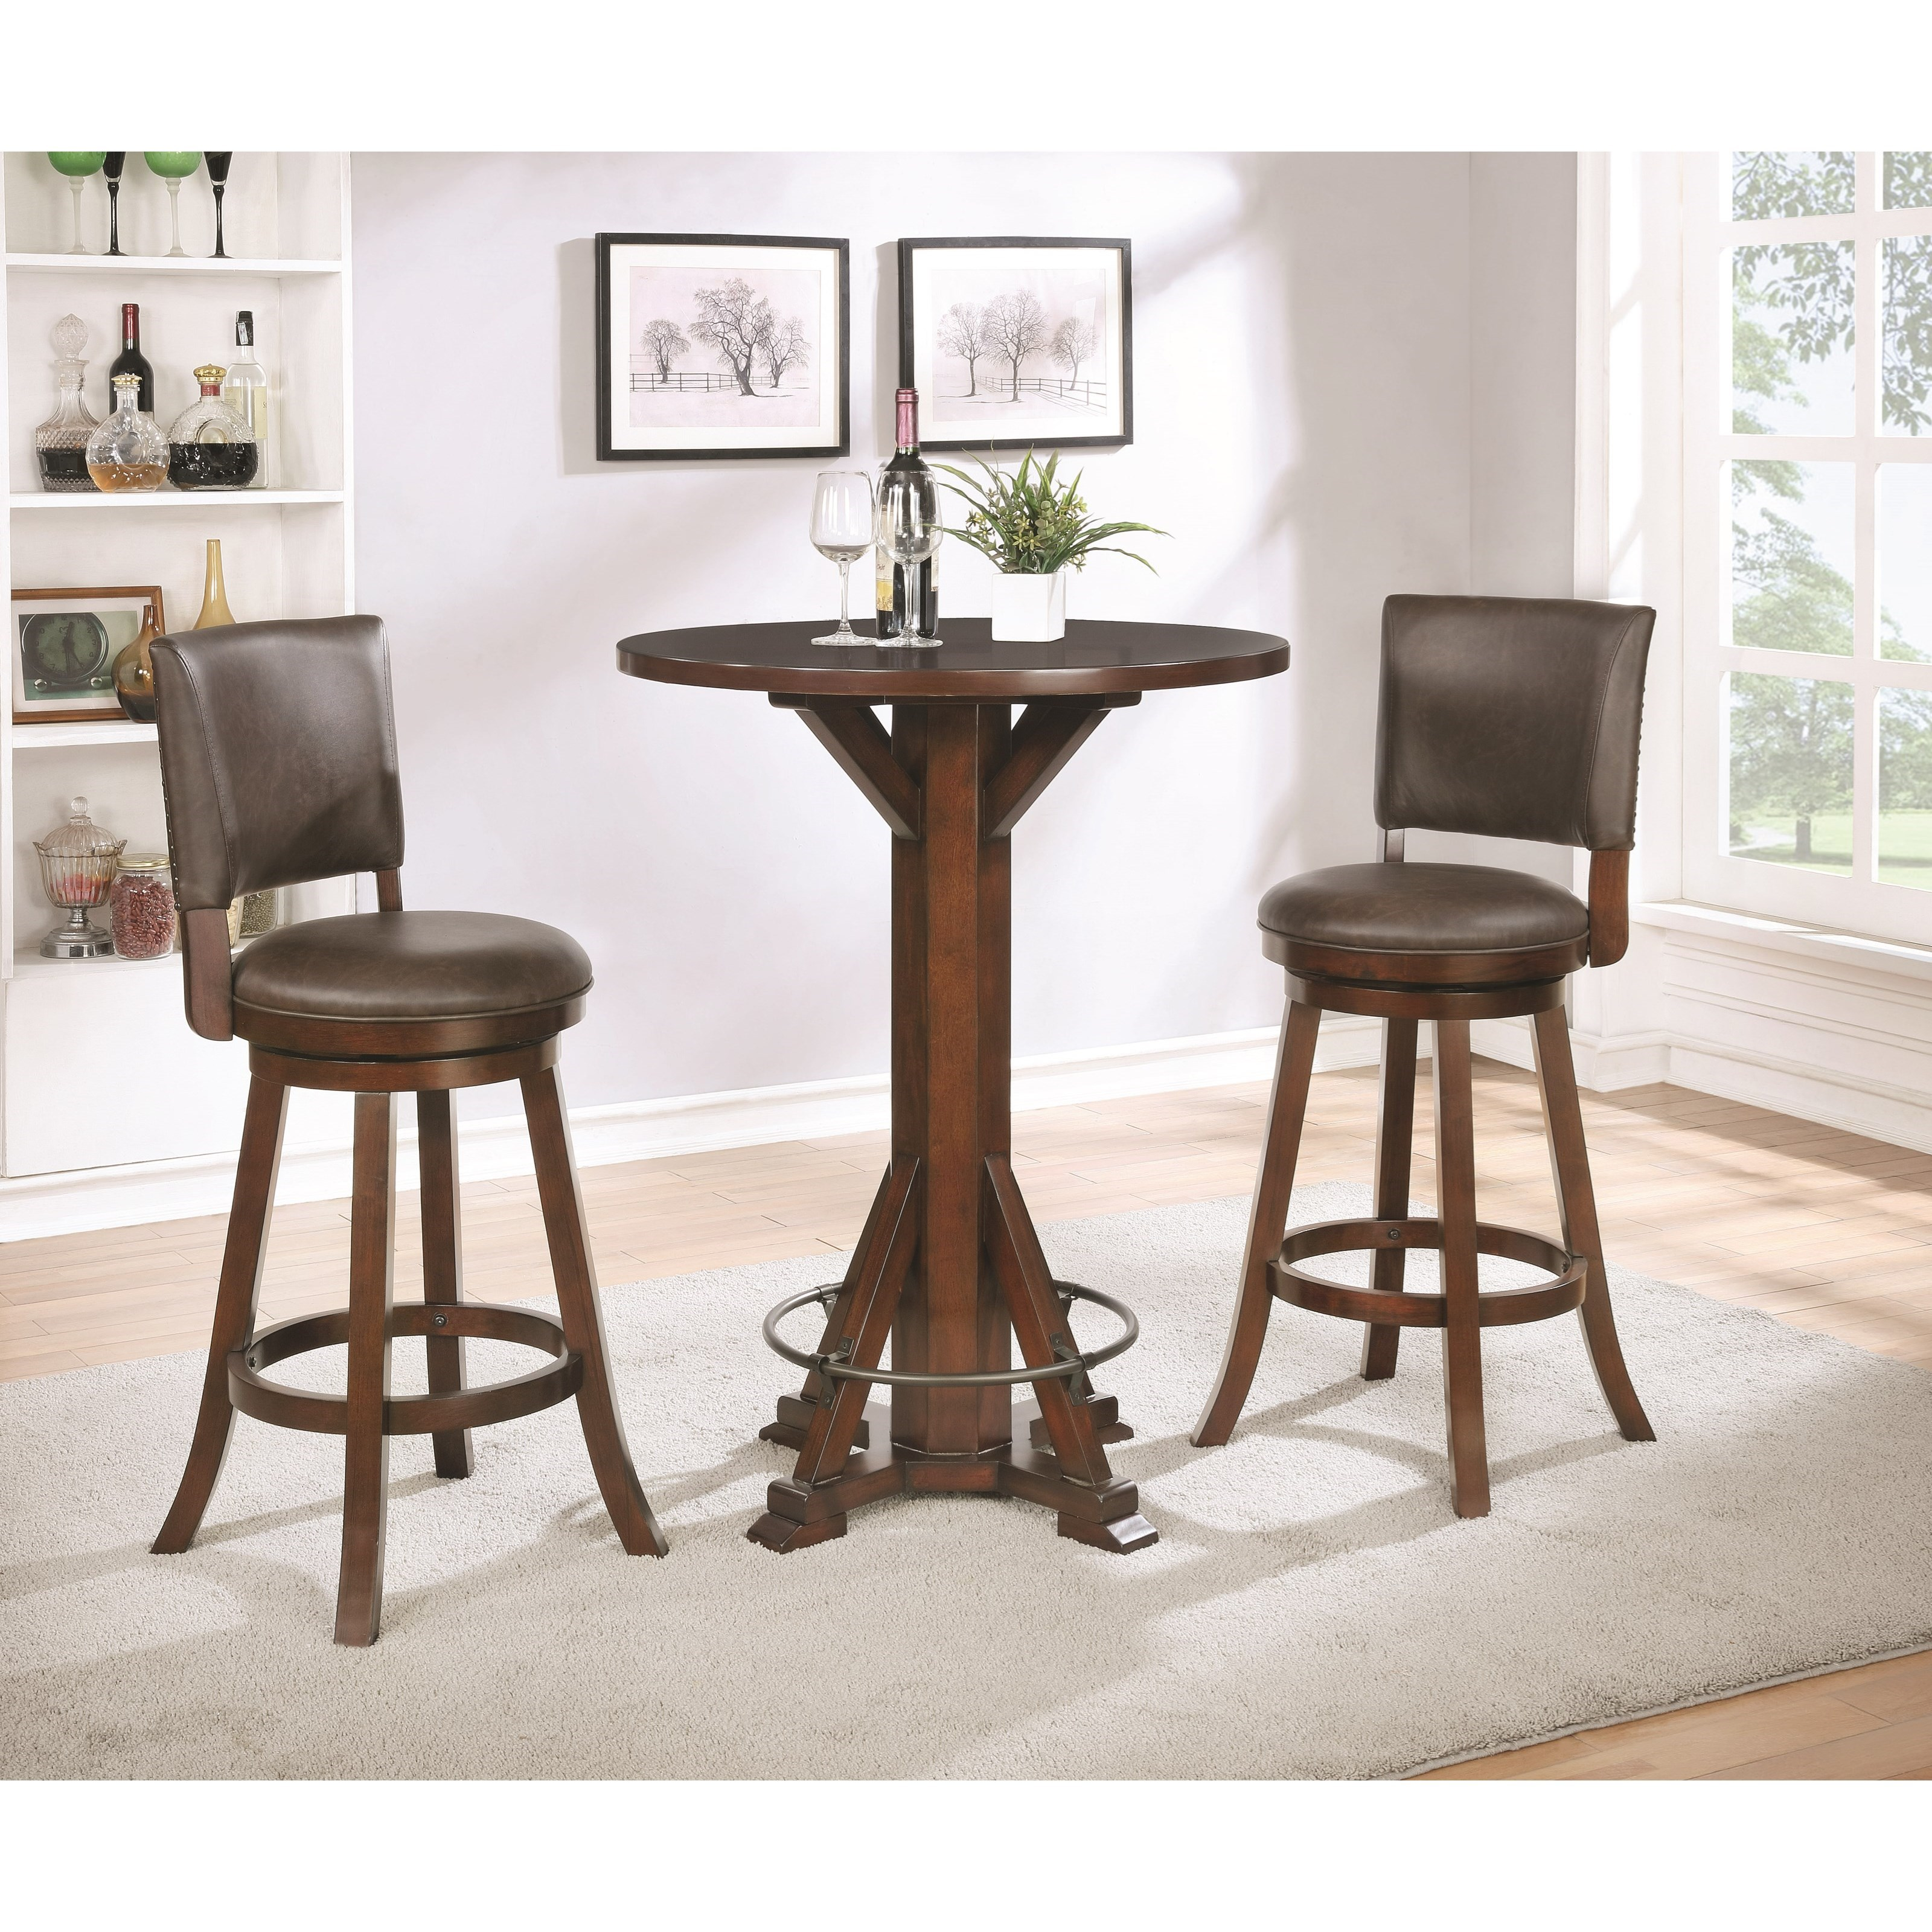 Coaster Dining Chairs And Bar Stools Traditional